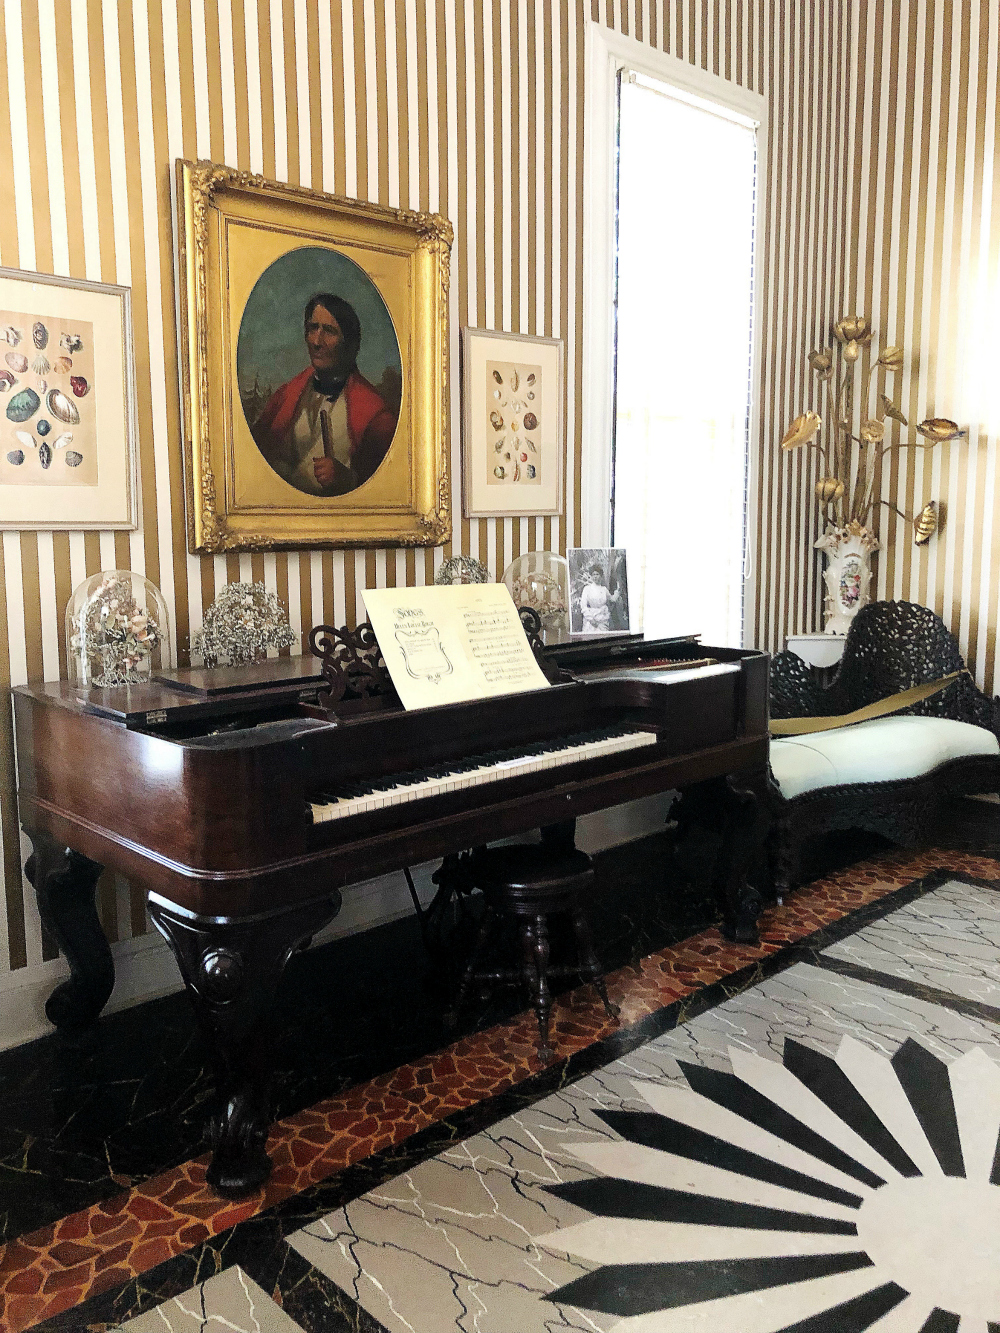 Helen, the second wife of Frederic Bartlett, was an accomplished pianist, and this was her music room. My son, also a musician, immediately noticed that the piano, a Steinway, seemed short on keys. Turns out this was one of Steinway's earlier pianos, designed with 85 keys, and when he changed to 88 keys, he asked customers to turn in their old pianos, which he had burned, en masse, in Atlantic City, New Jersey. The Bartletts did not turn in their 85-key piano.